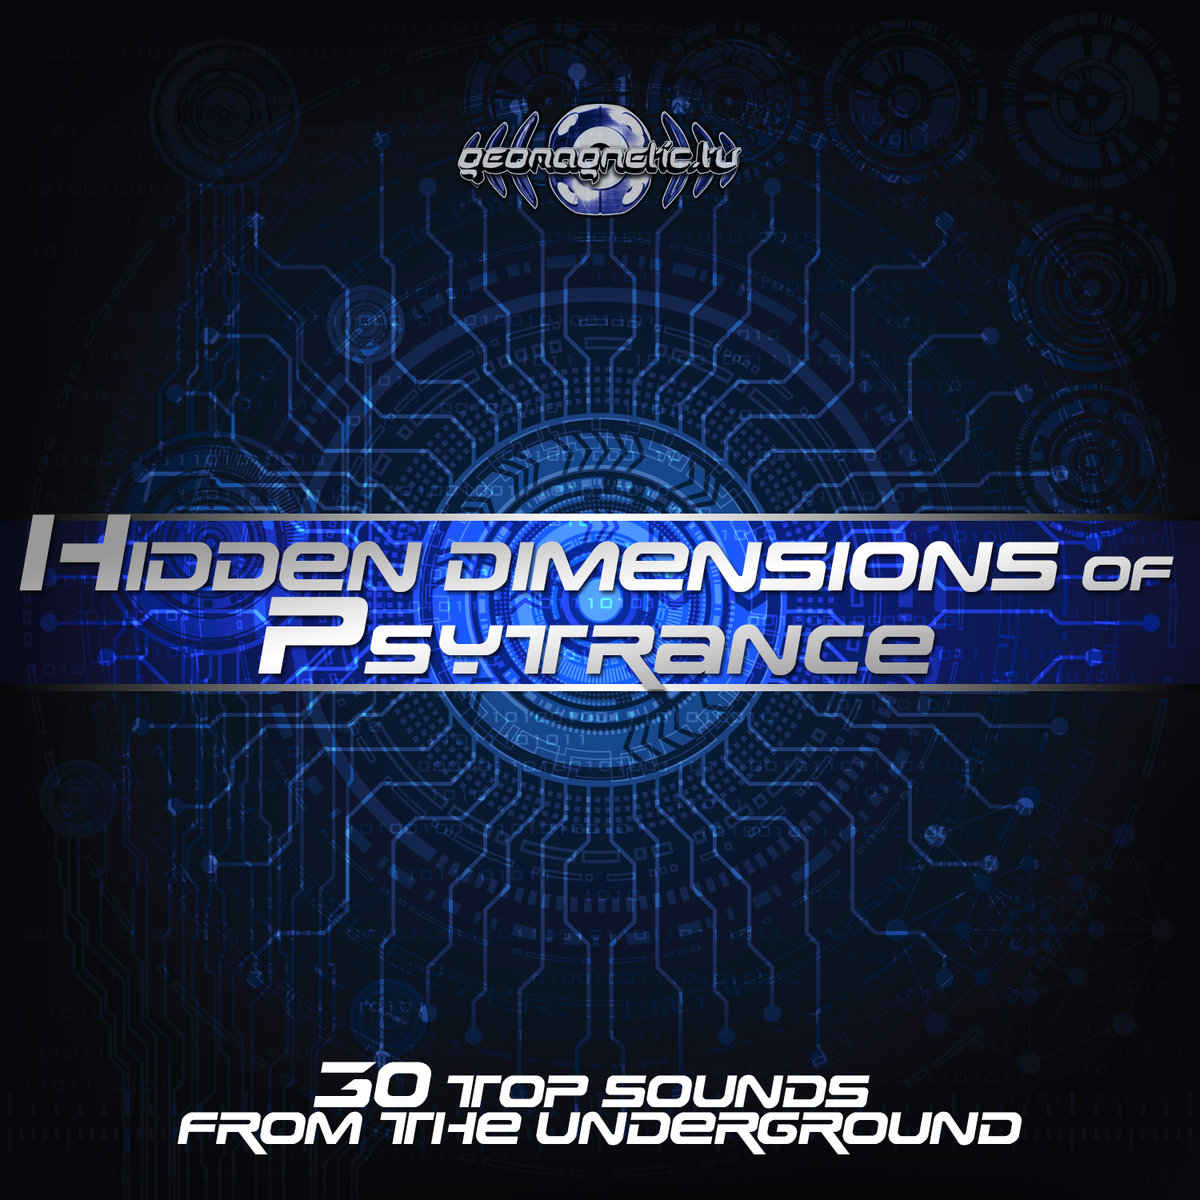 Archeos - Dark Forest @ 'Various Artists - Hidden Dimensions of Psytrance (30 Top Sounds From The Underground)' album (electronic, goa)